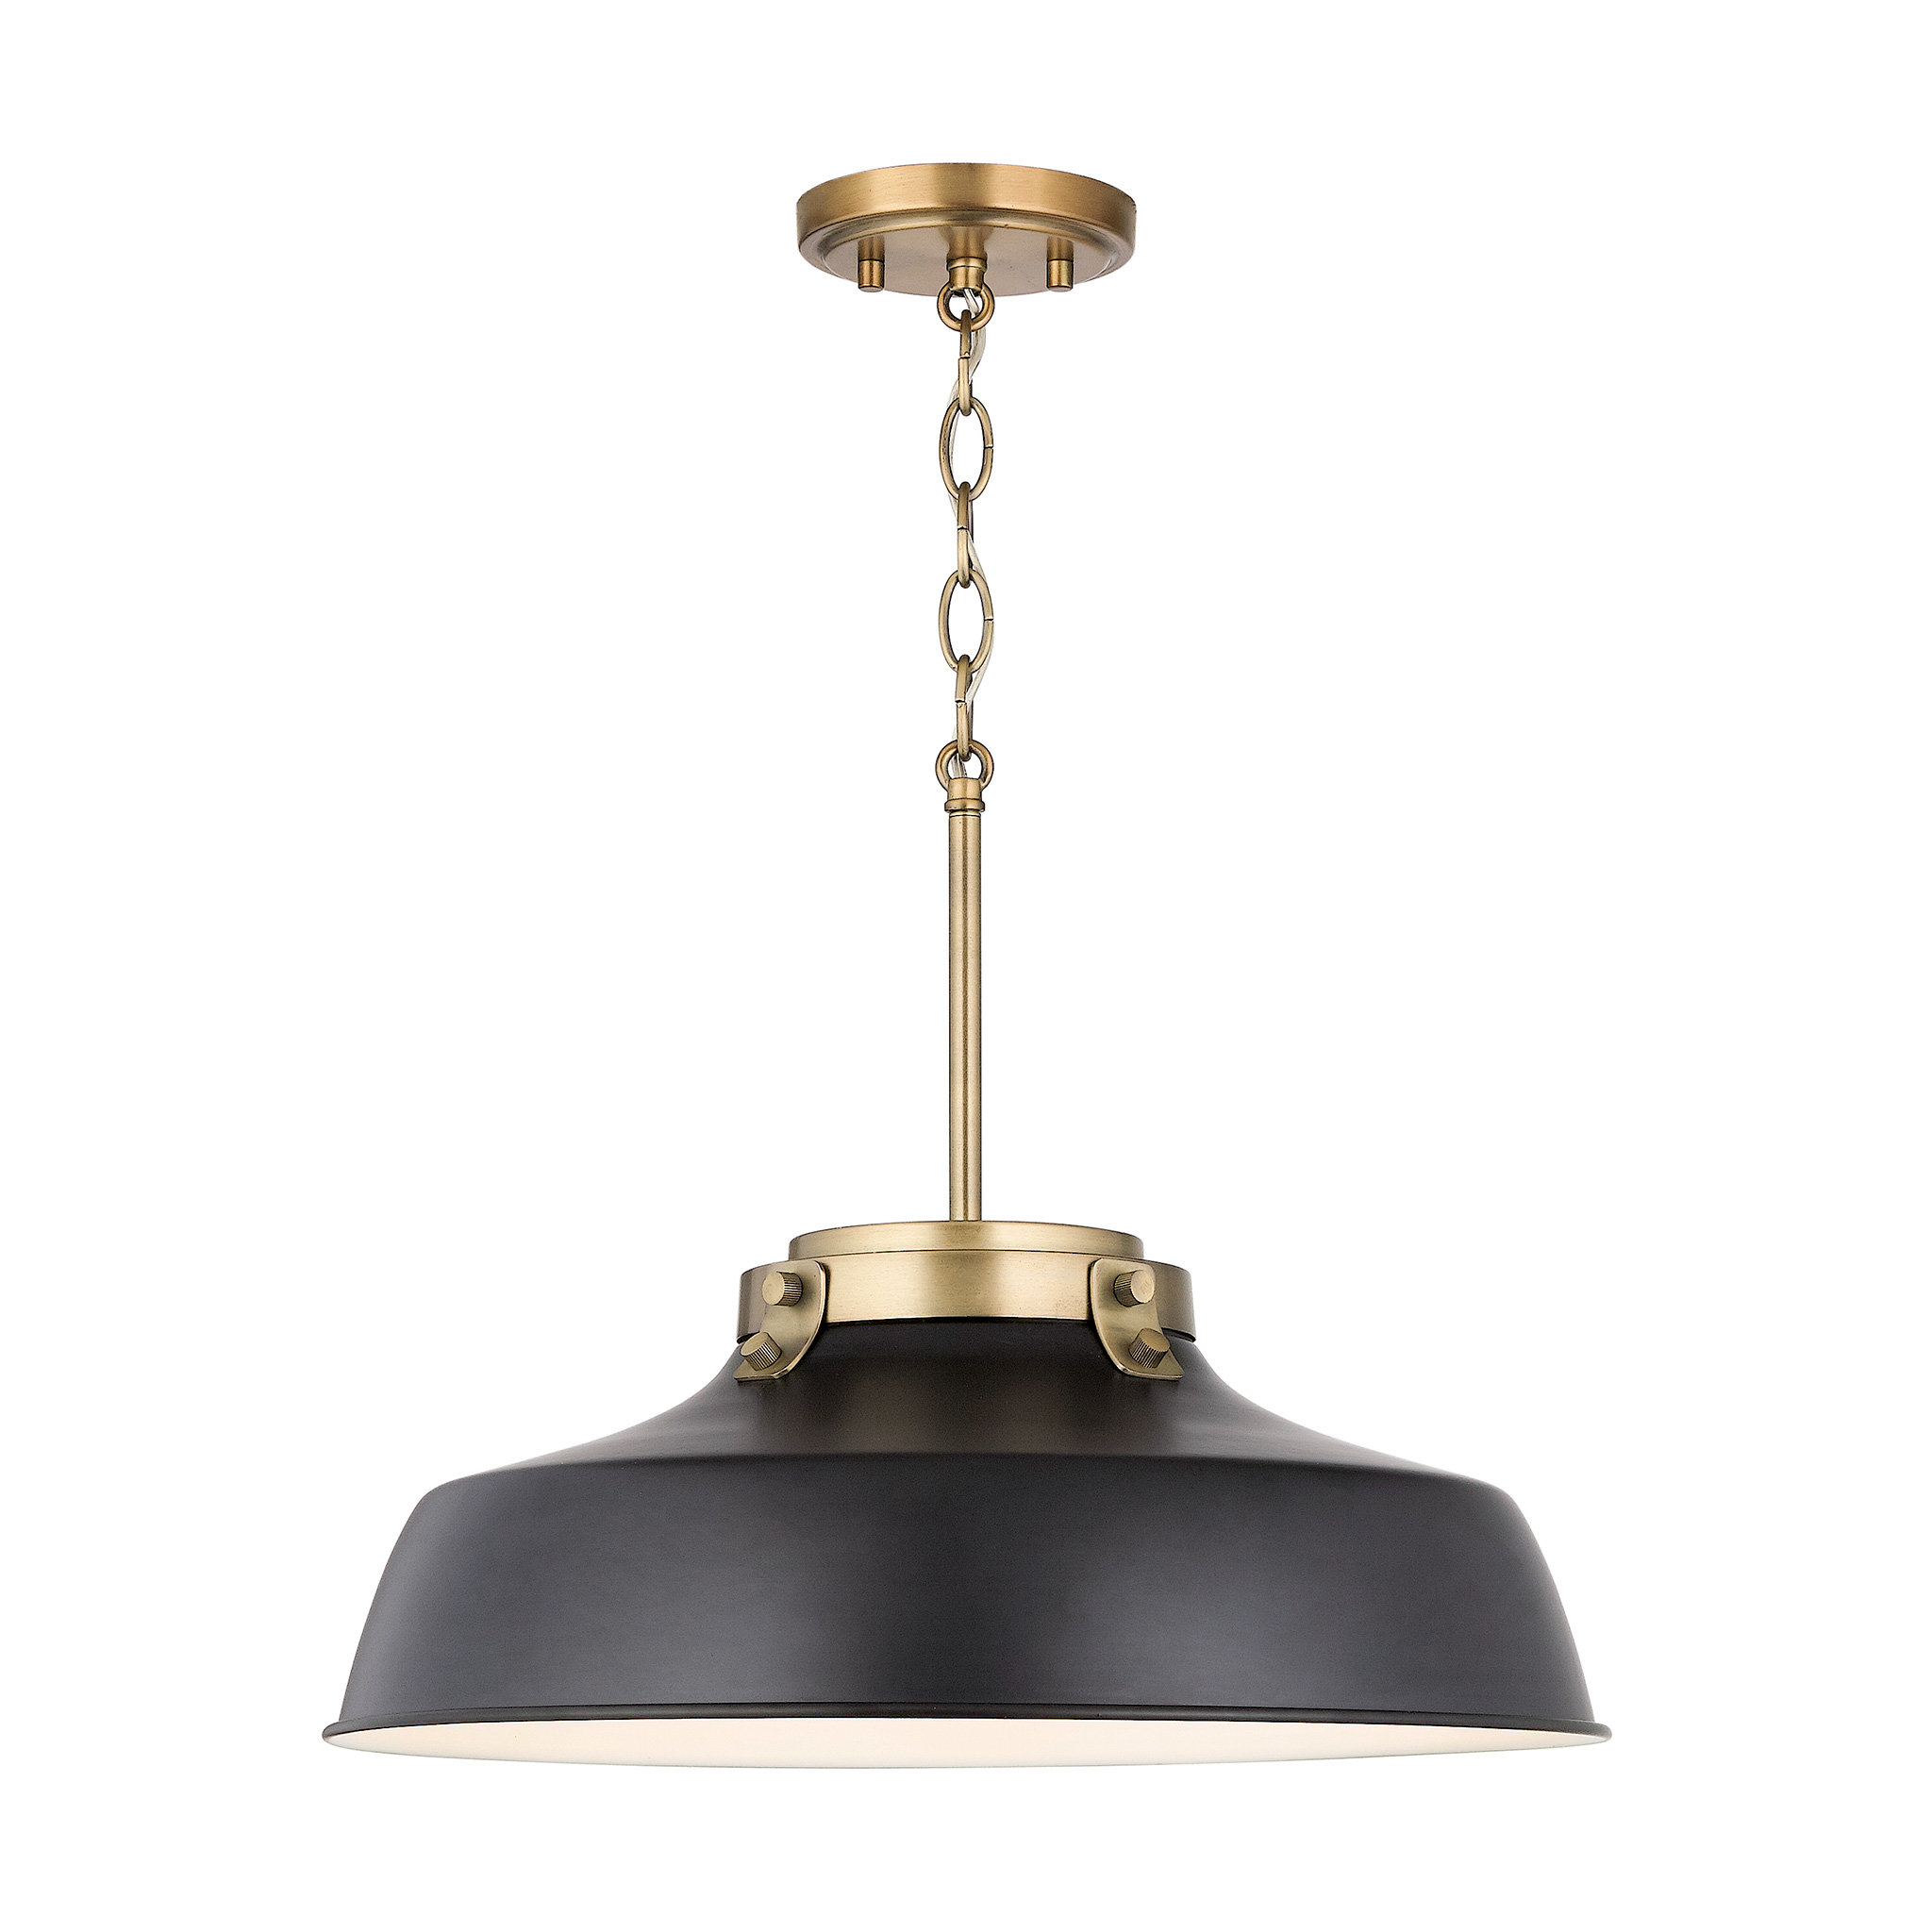 Macon 1 Light Single Dome Pendants Intended For Most Popular 1 Light Dome Pendant (View 6 of 20)